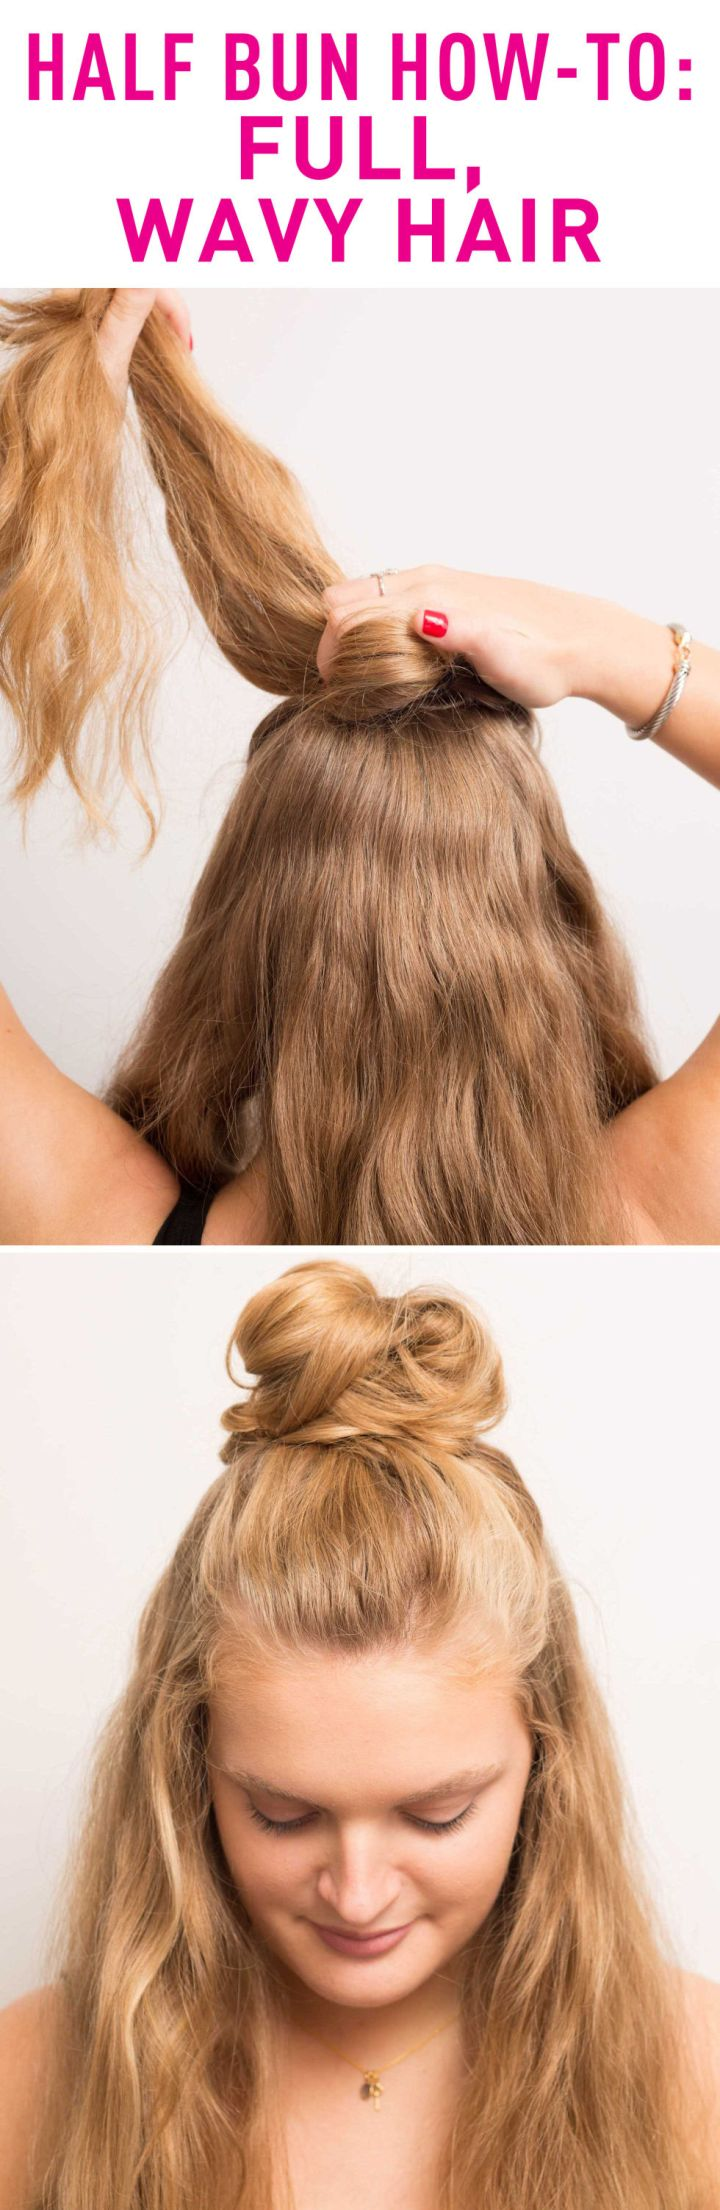 Pigtail bun tutorial image collections any tutorial examples new cute bun hairstyles hairstyle ideas half bun hairstyles tutorial with s baditri image collections baditri Gallery